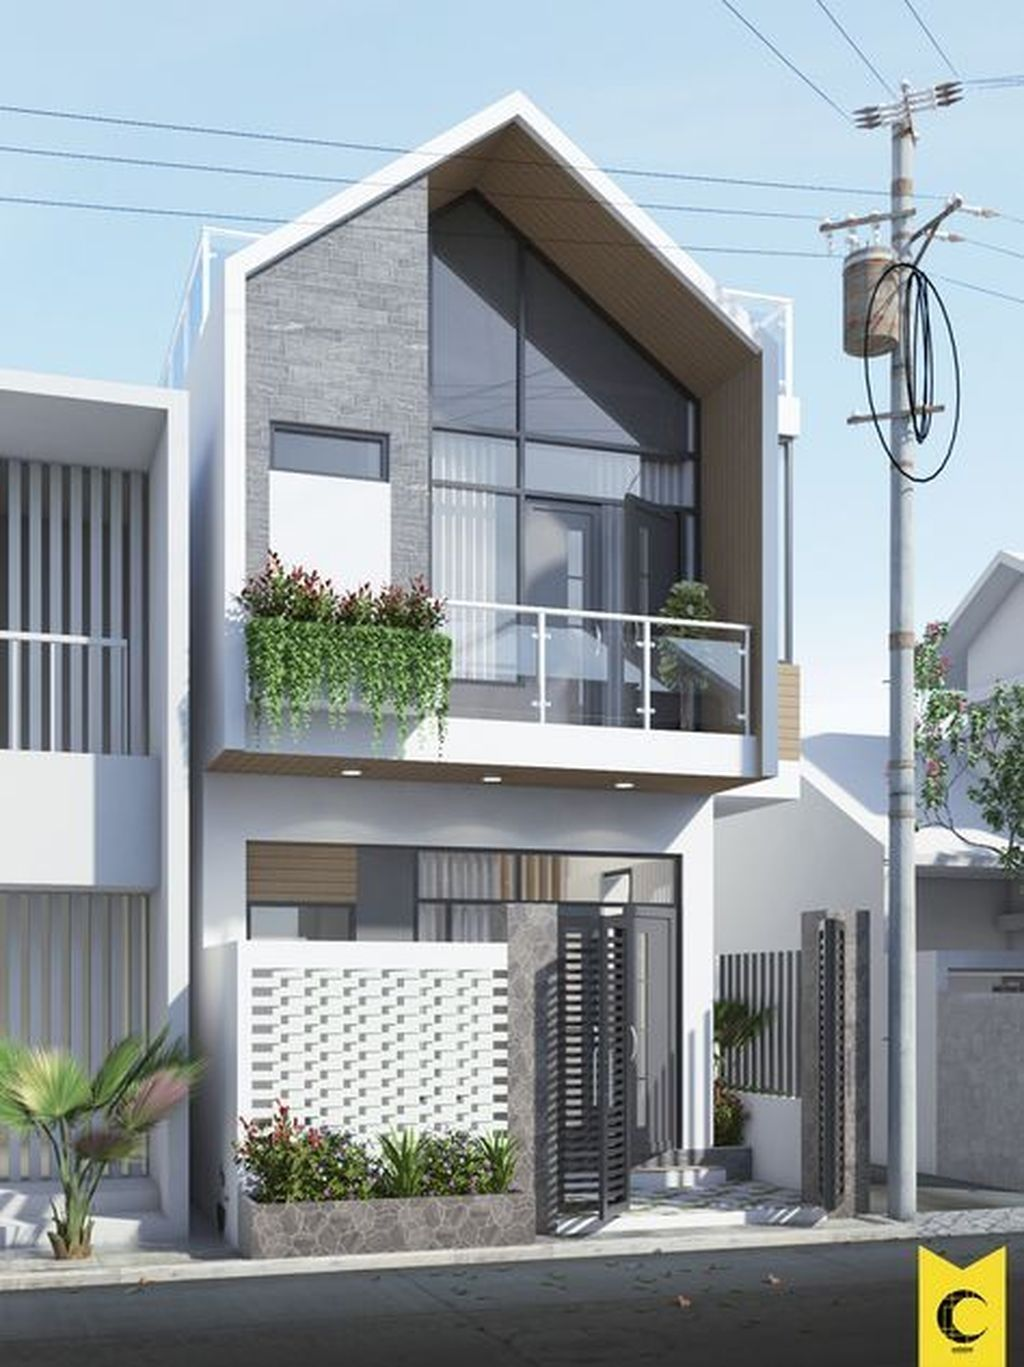 Pin By C C On Archi 外觀 Townhouse Designs Fasade House Modern